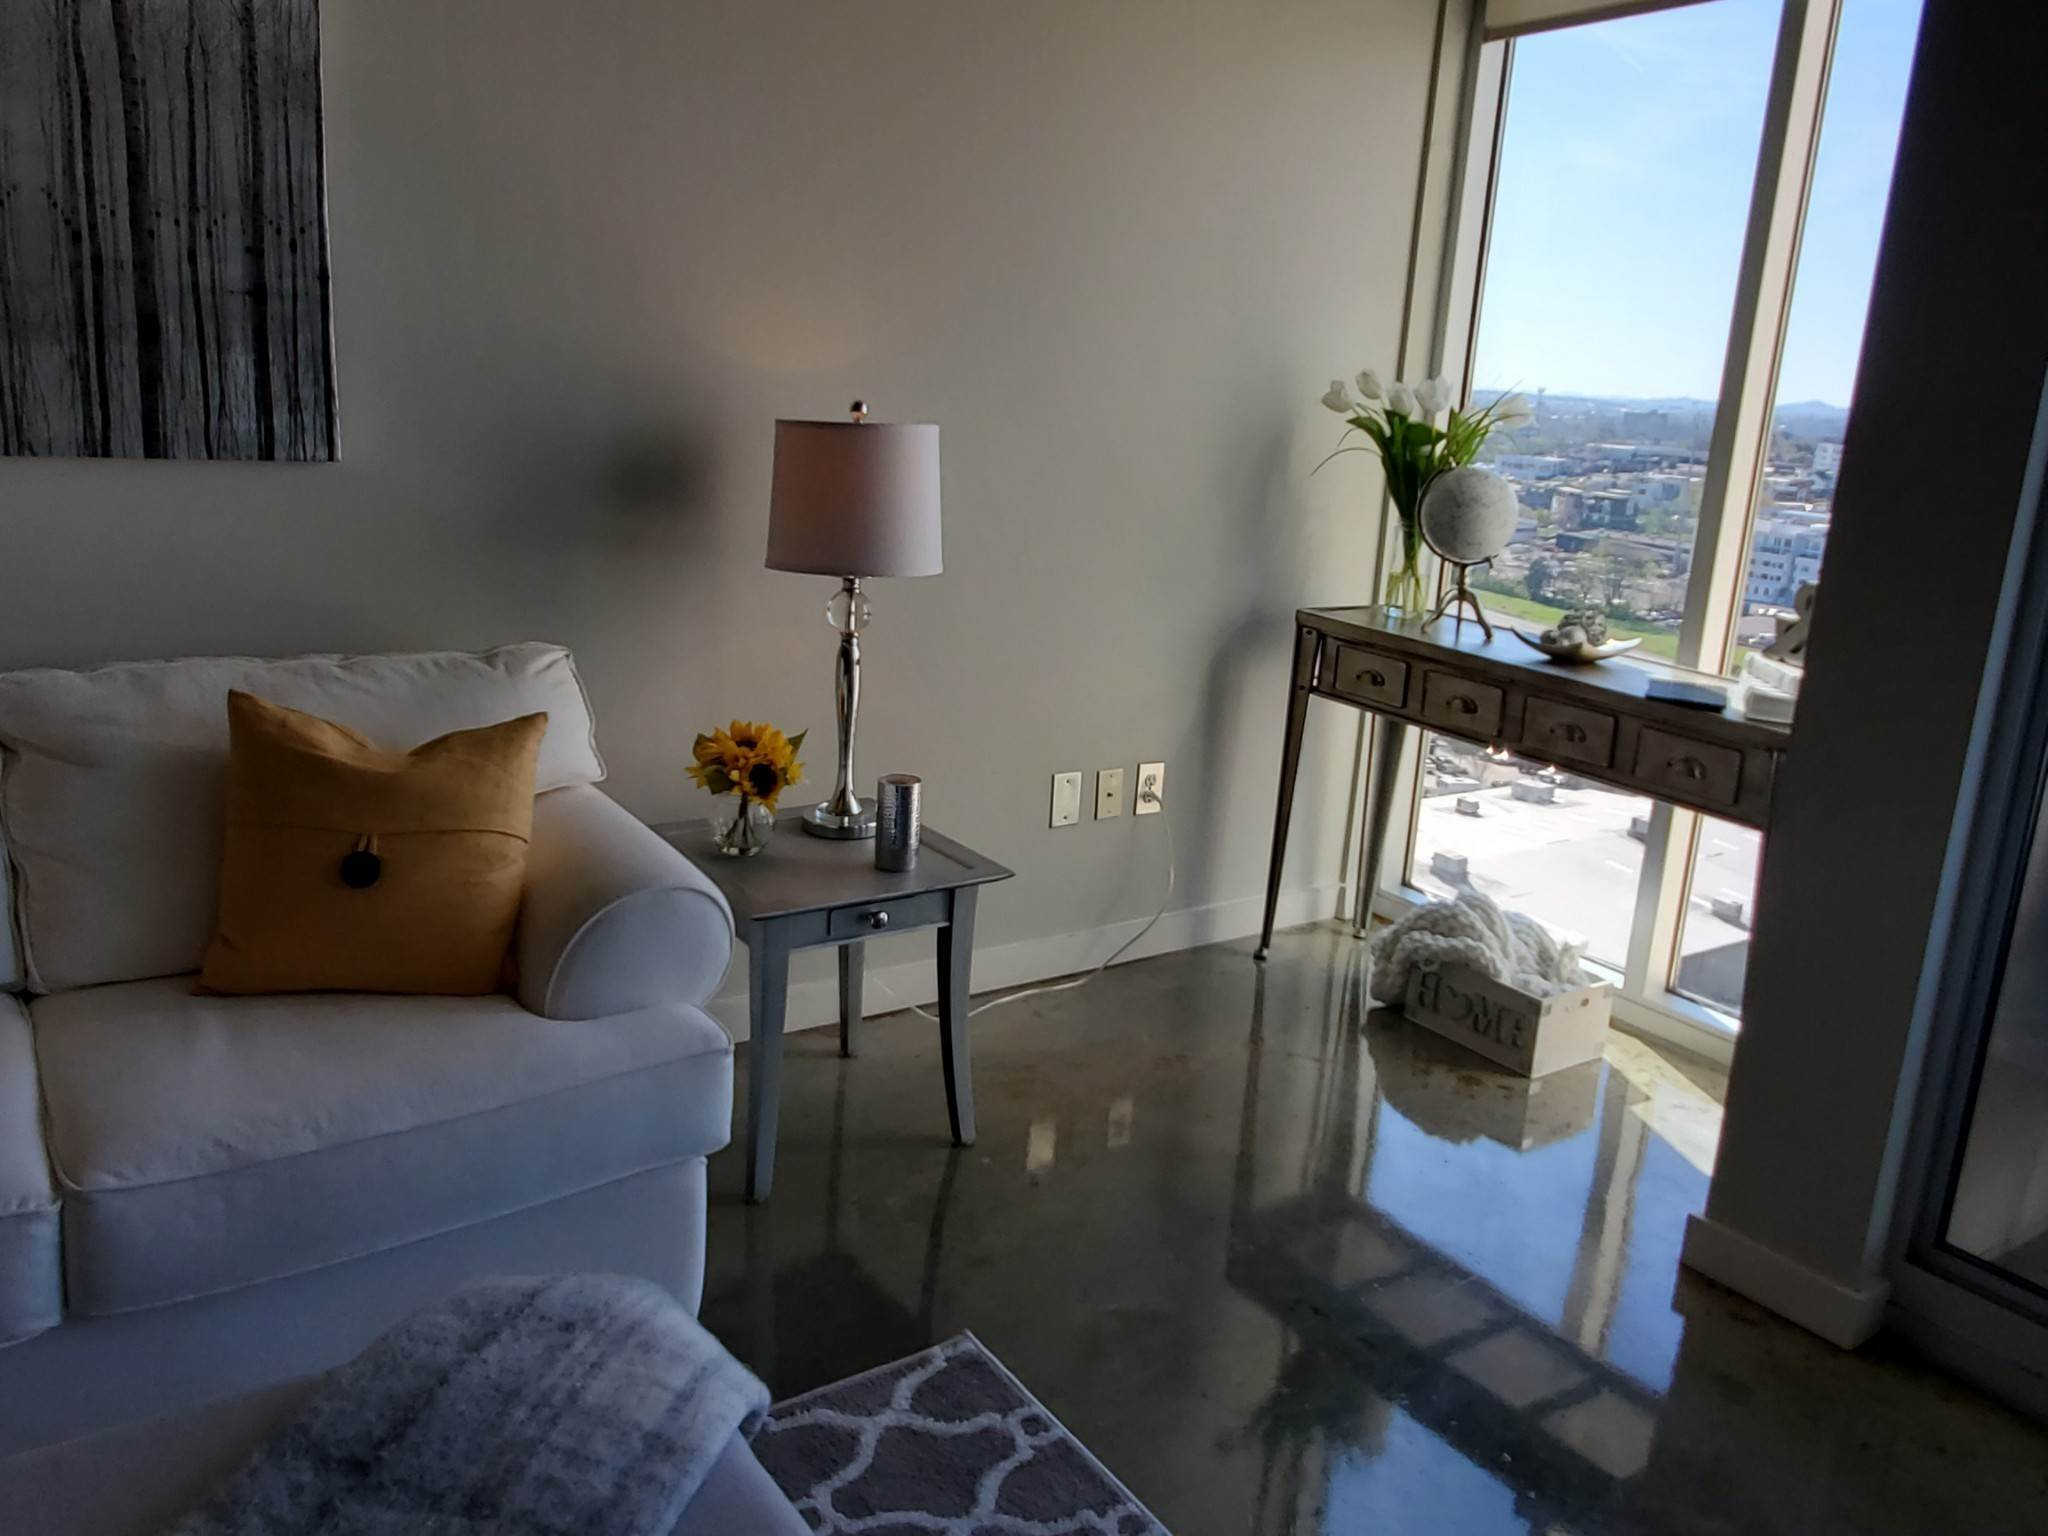 4. High Rise for Sale at 600 12th Ave, S Nashville, Tennessee 37203 United States